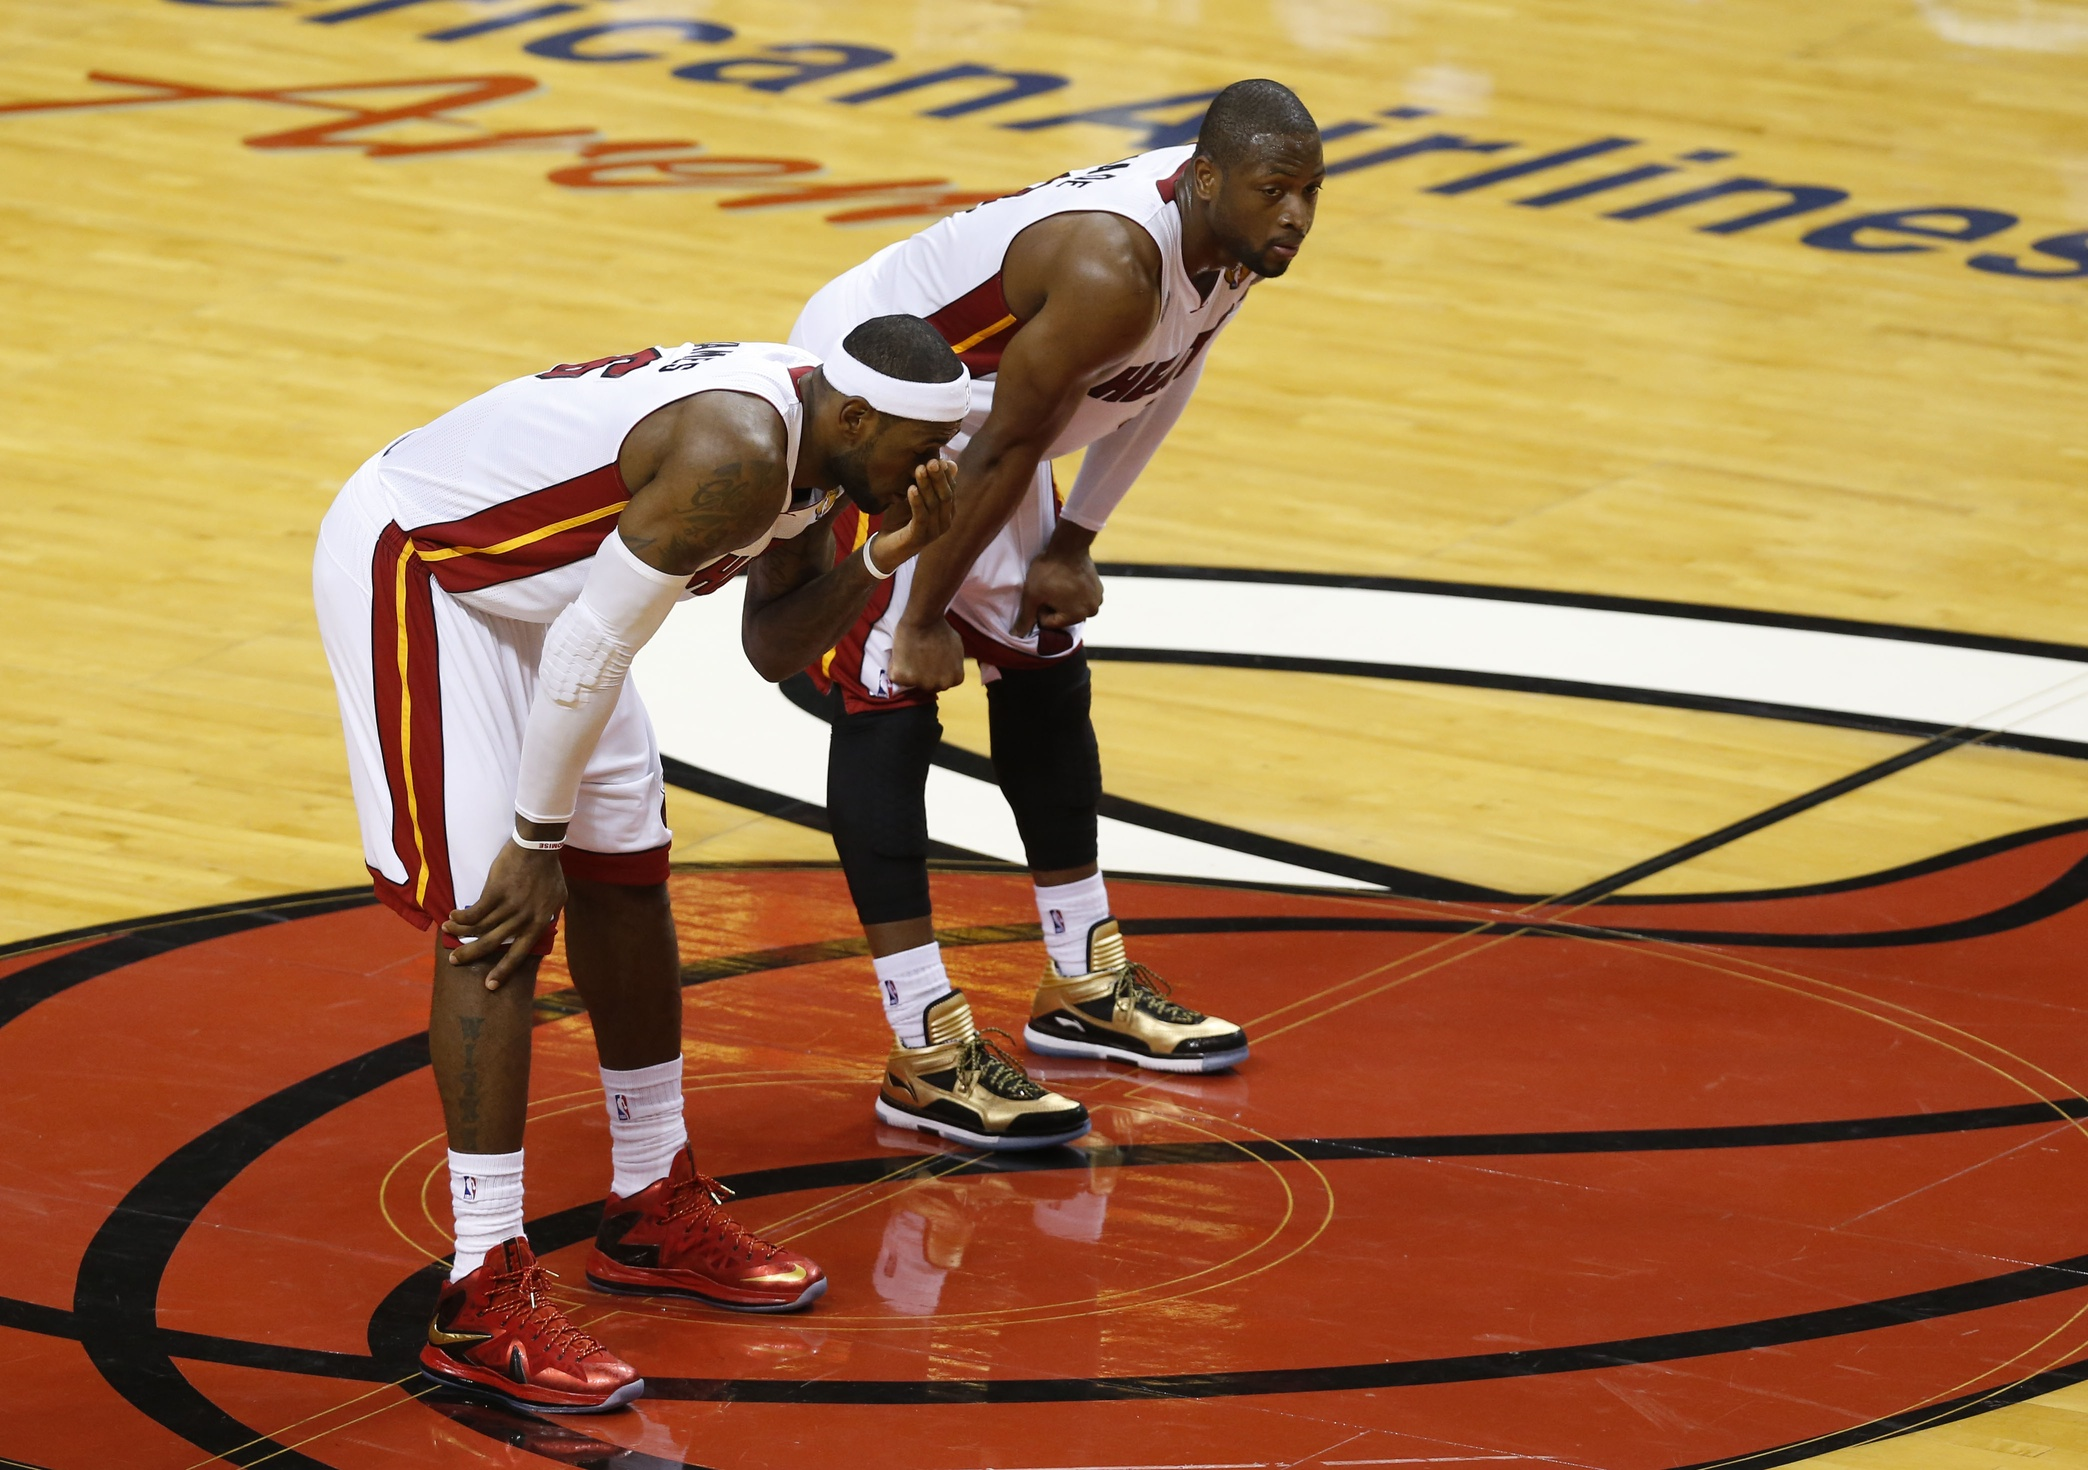 LeBron James and the Heat are still very good. But he needs his sidekick. Photo by Derick E. Hingle-USA TODAY Sports